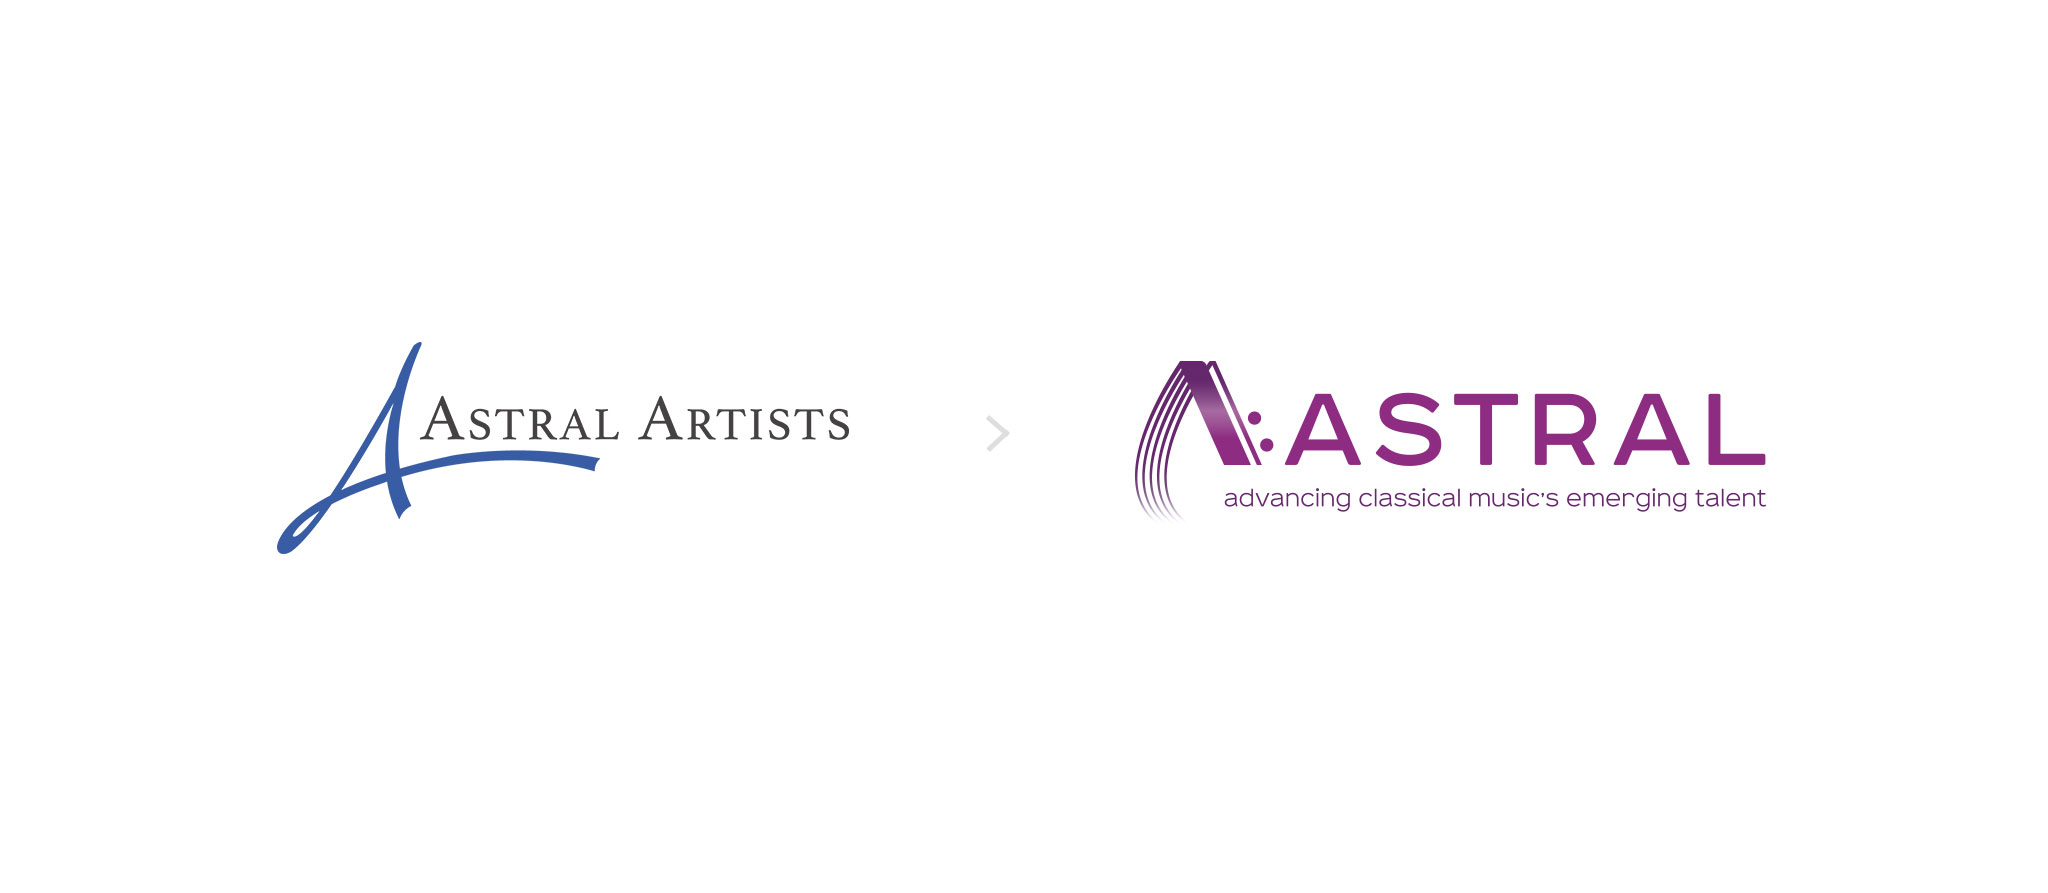 Astral logo rebrand graphic